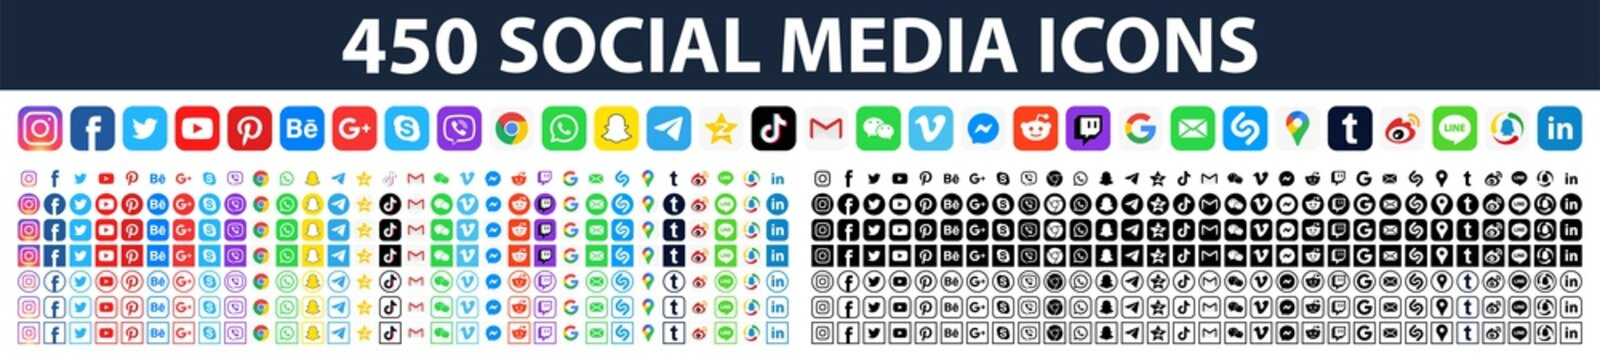 450 social media icons. Facebook, instagram, tiktok, twitter, youtube, messenger, gmail, pinterest, google, viber, whatsap, linkedin, telegram, Editorial vector. Vinnitsa, Ukraine - March 11, 2020.